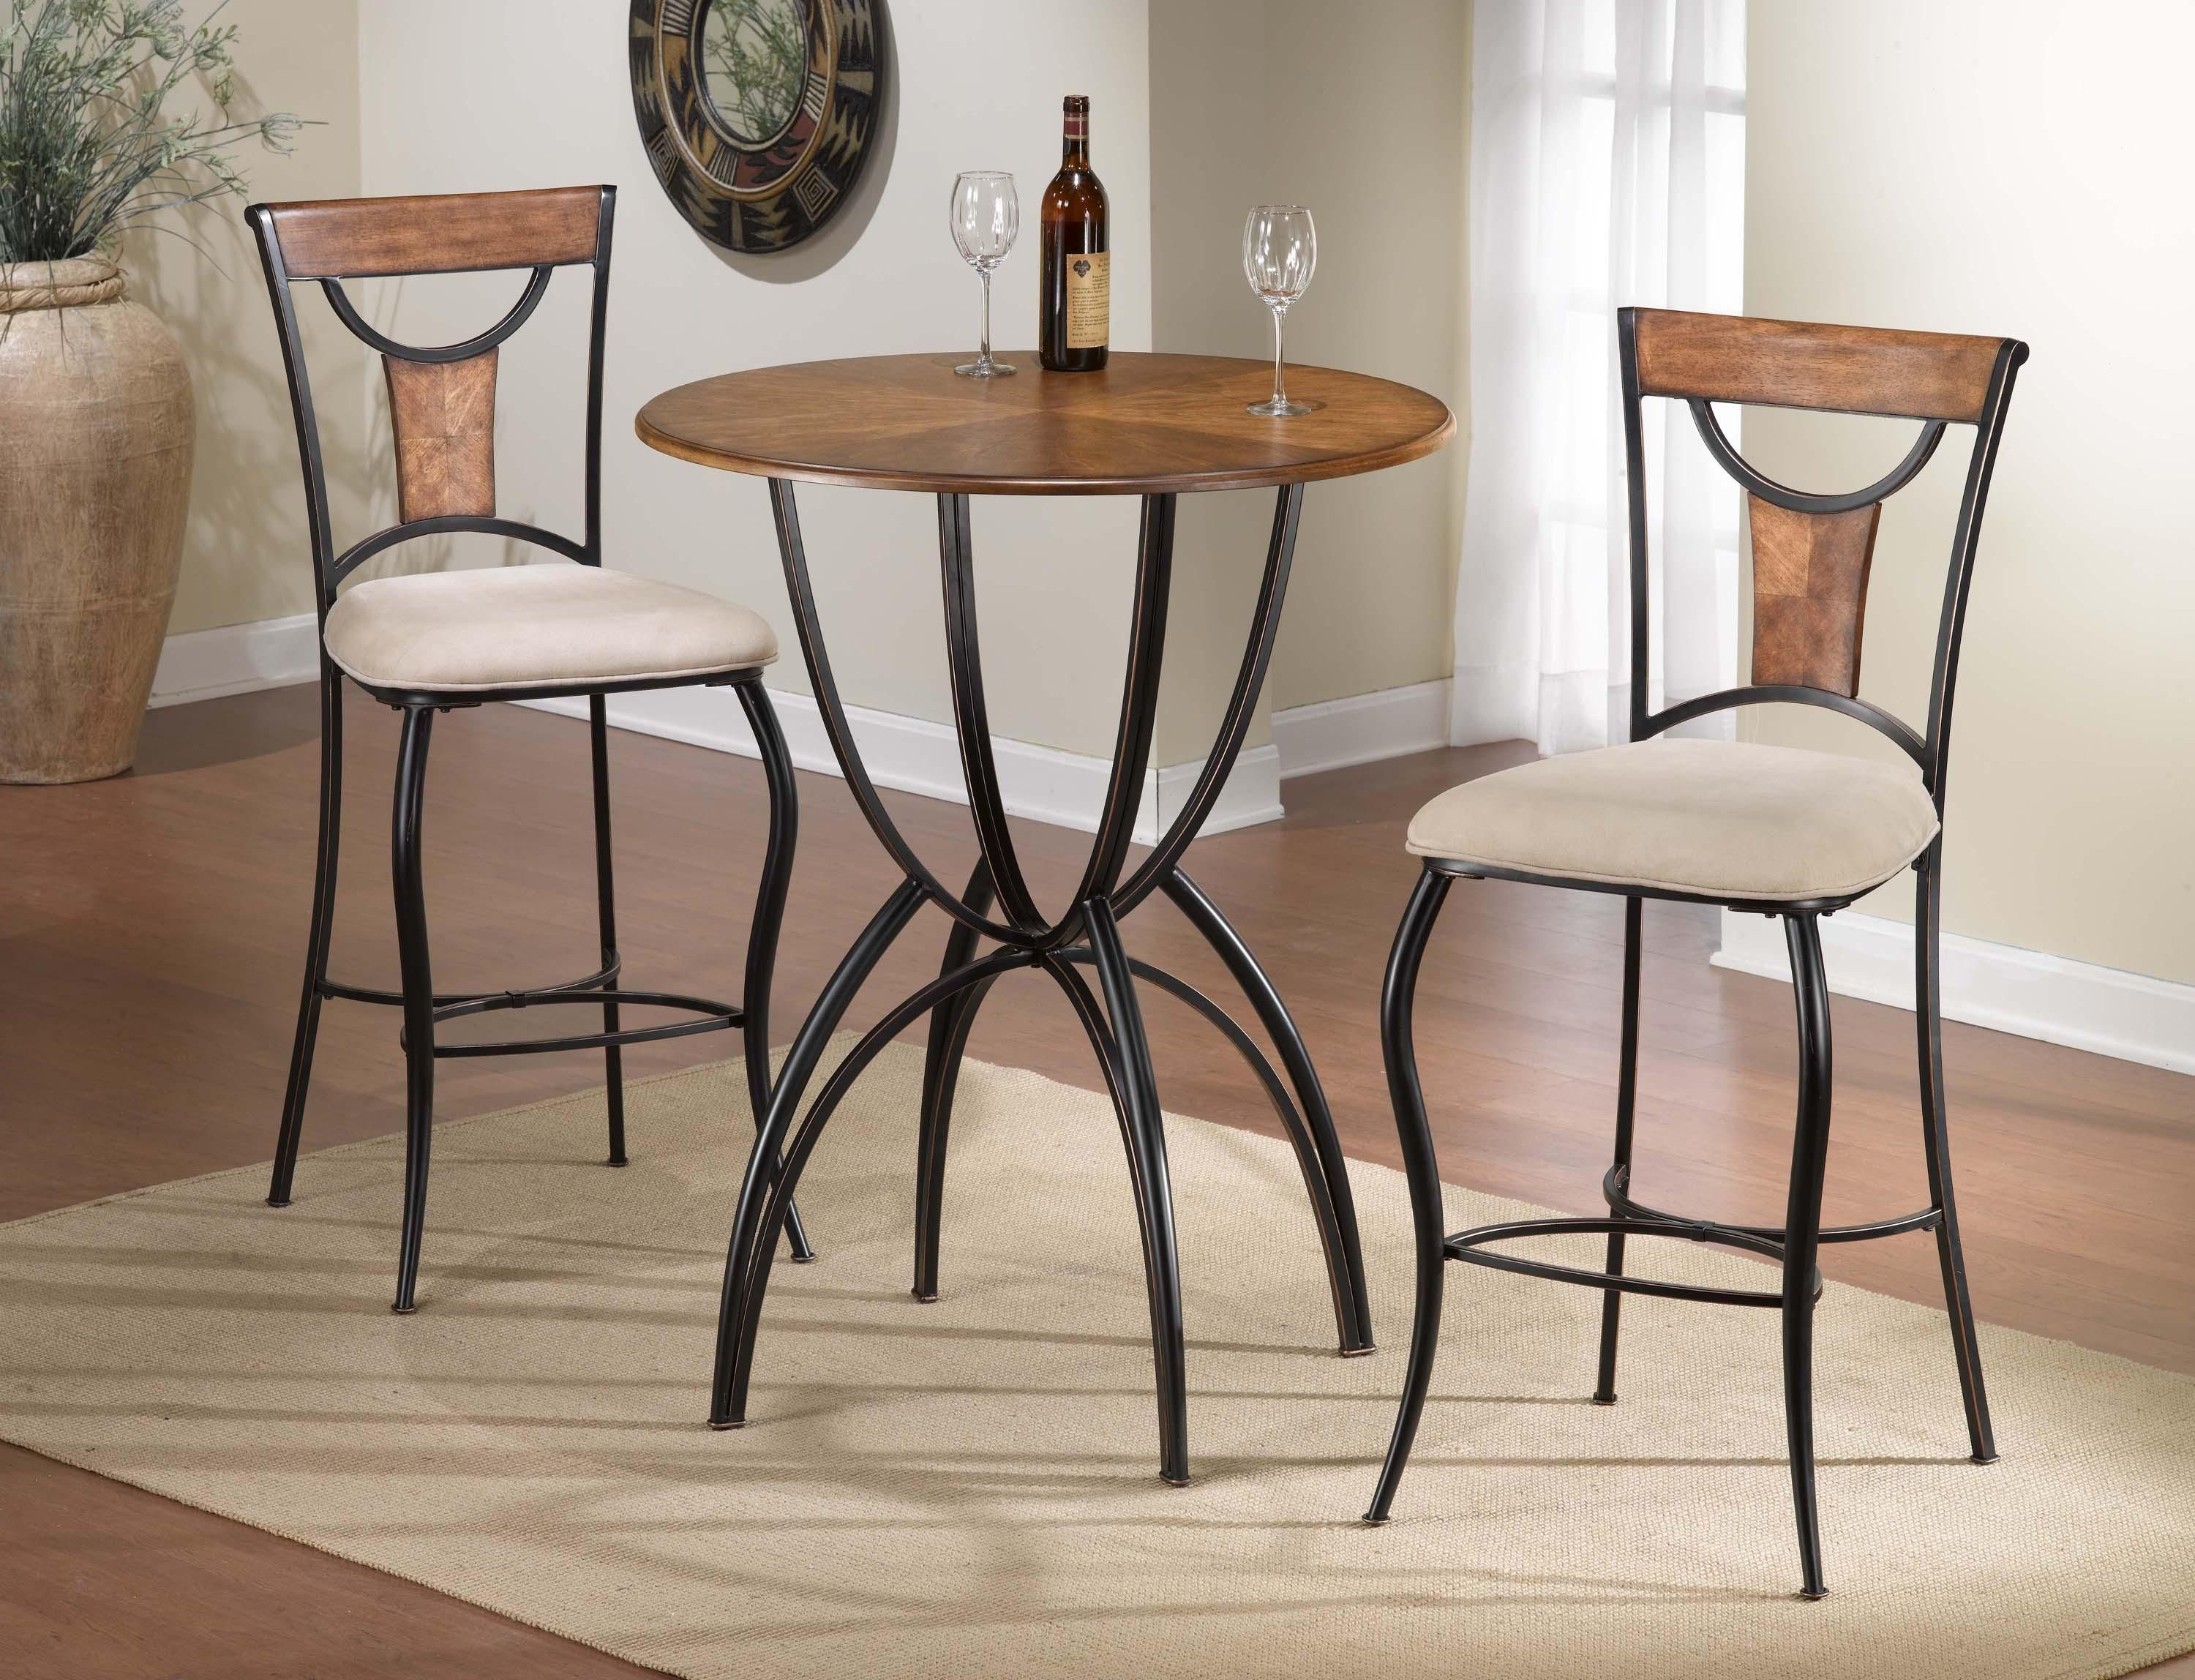 Small Kitchen Pub Table And Chairs Pub Table Sets Bistro Table Set Bistro Table